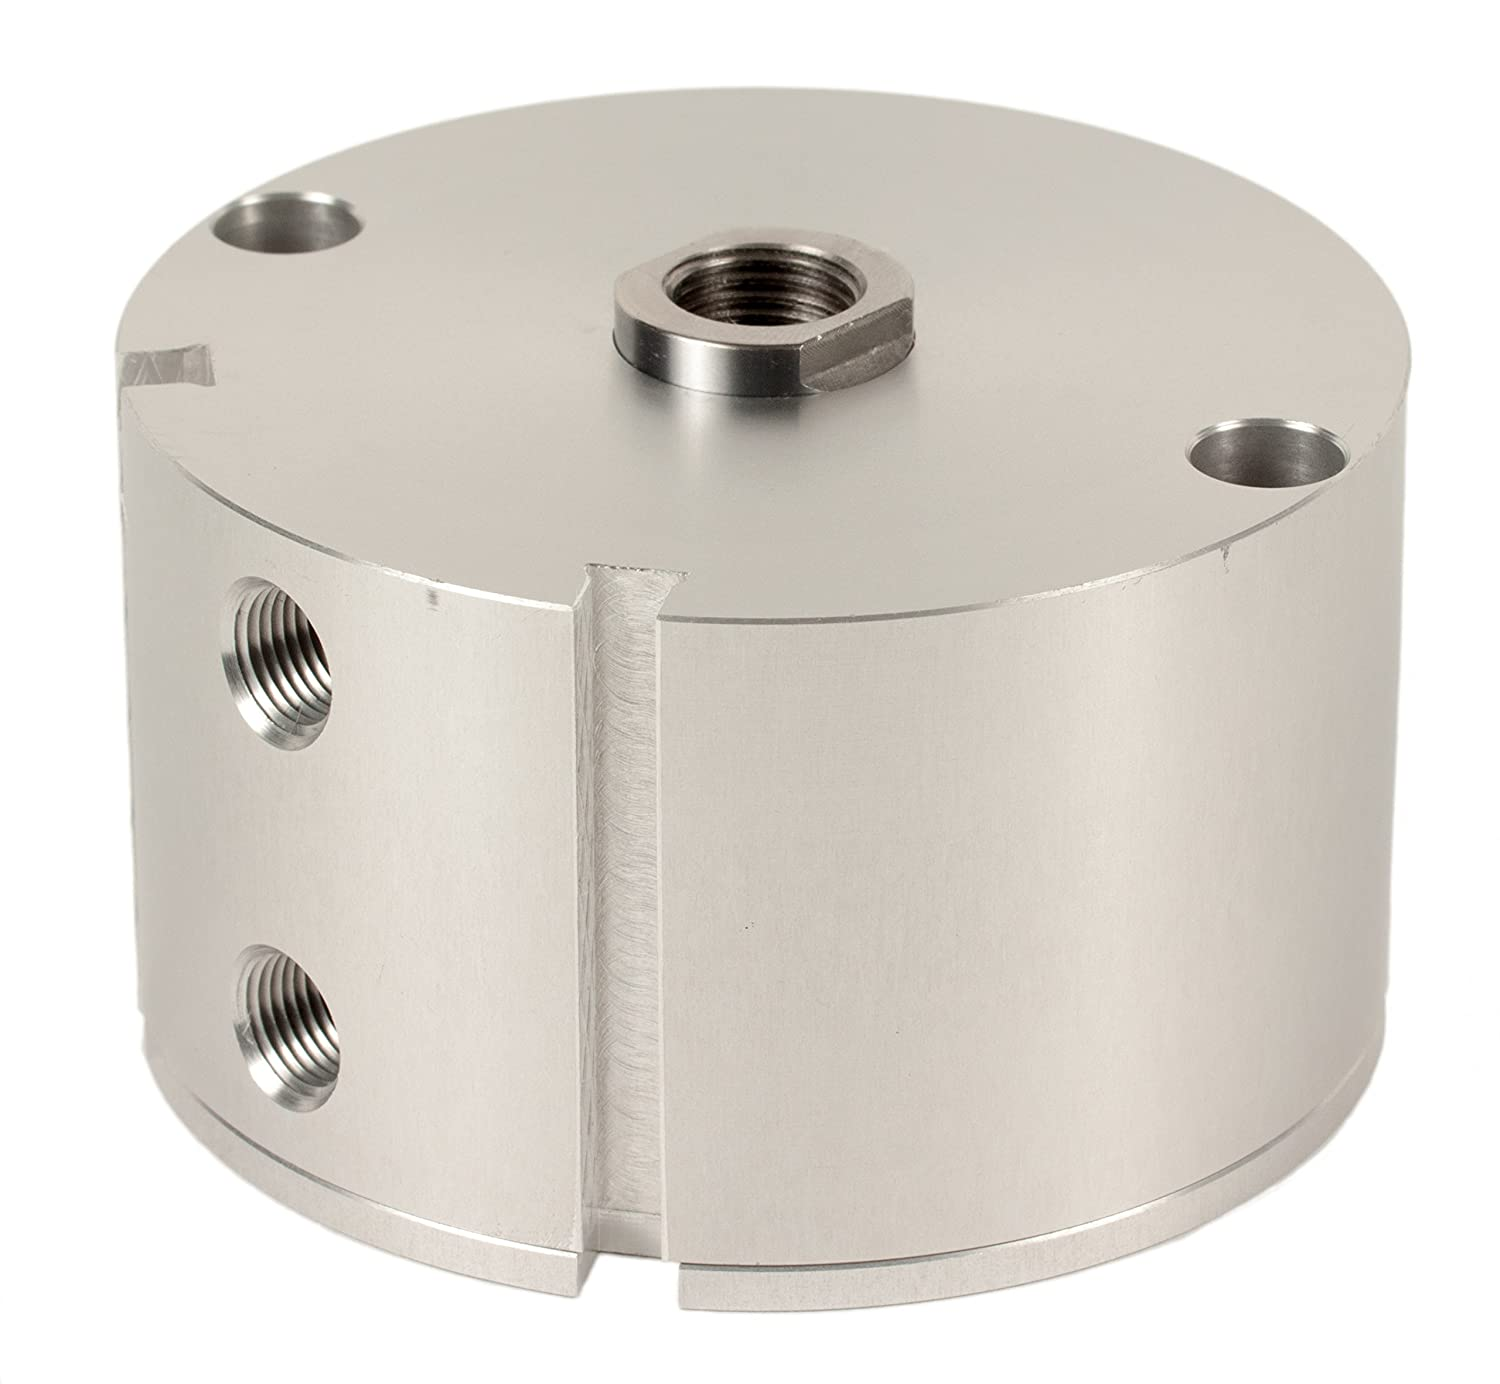 Fabco-Air C-321-X-E Original Pancake Cylinder, Double Acting, Maximum Pressure of 250 PSI, Switch Ready with Magnet, 2' Bore Diameter x 3/4' Stroke